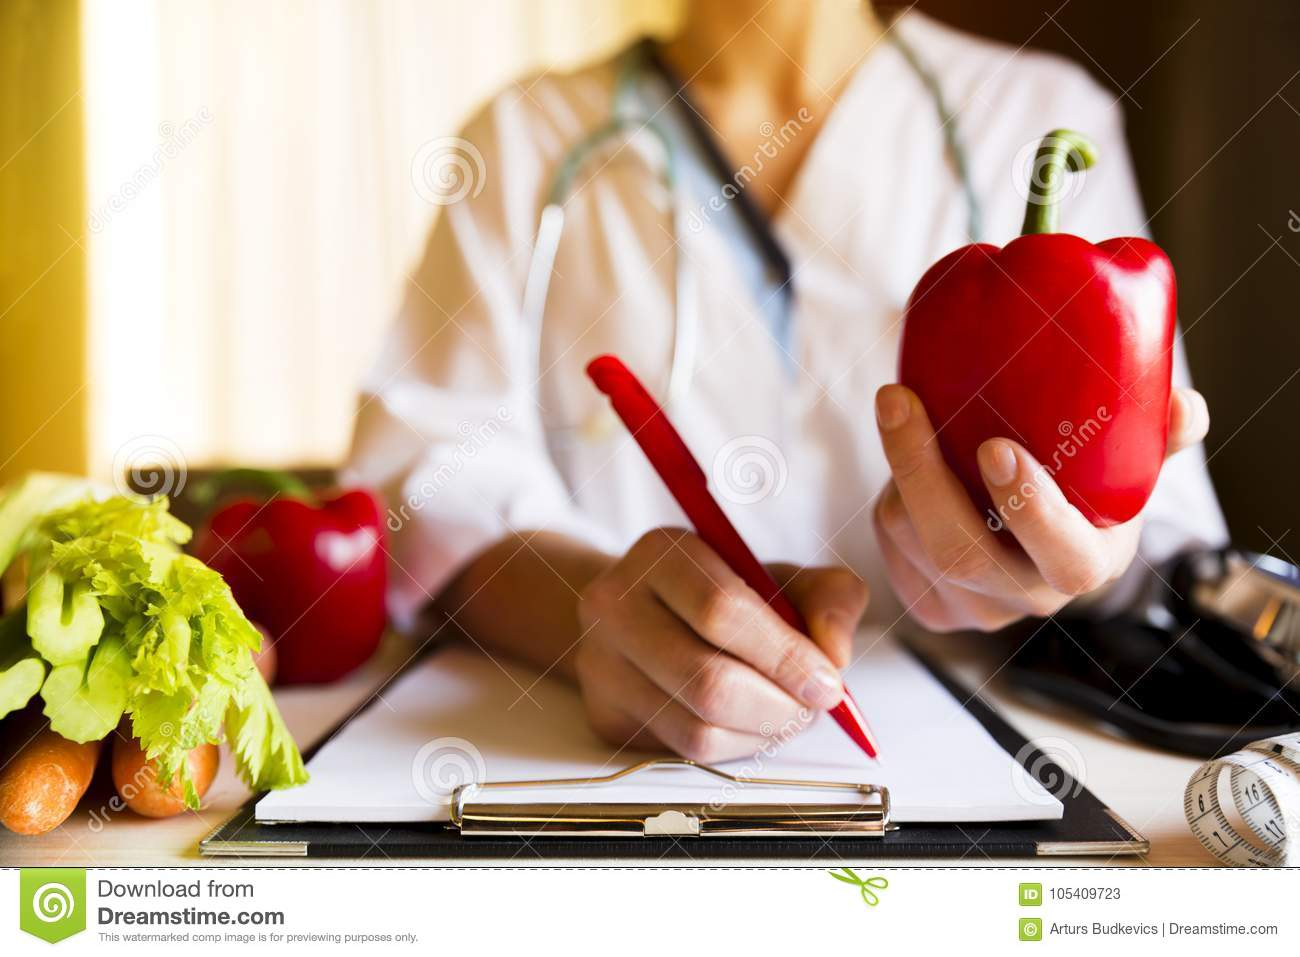 Vegetable diet nutrition and medication concept. Nutritionist of